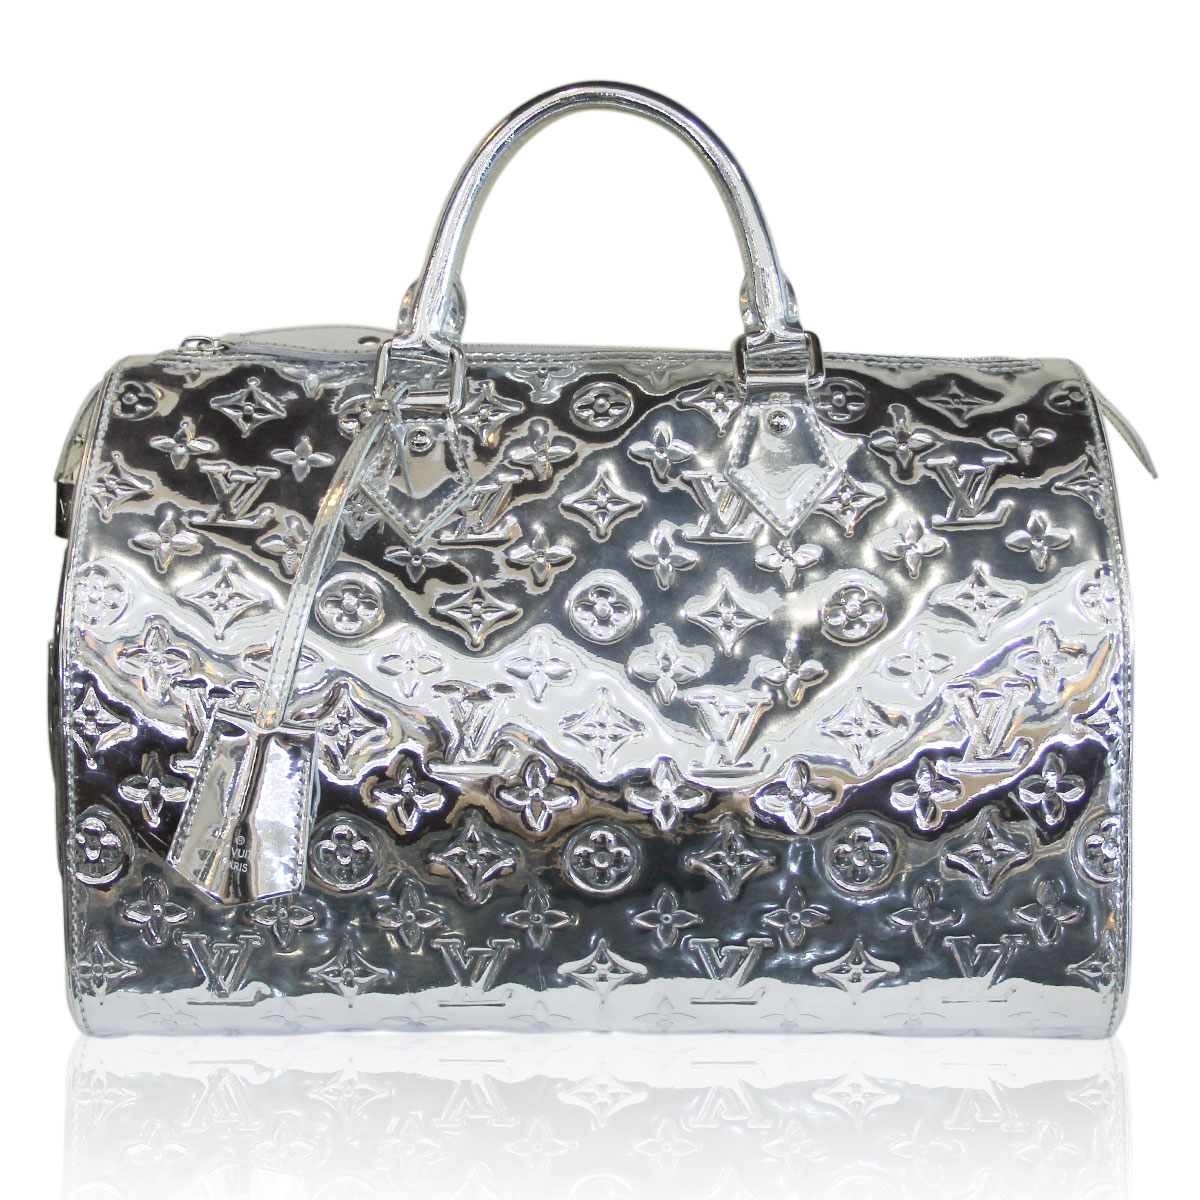 Louis Vuitton Speedy 30 Silver Monogram Black Friday Sale